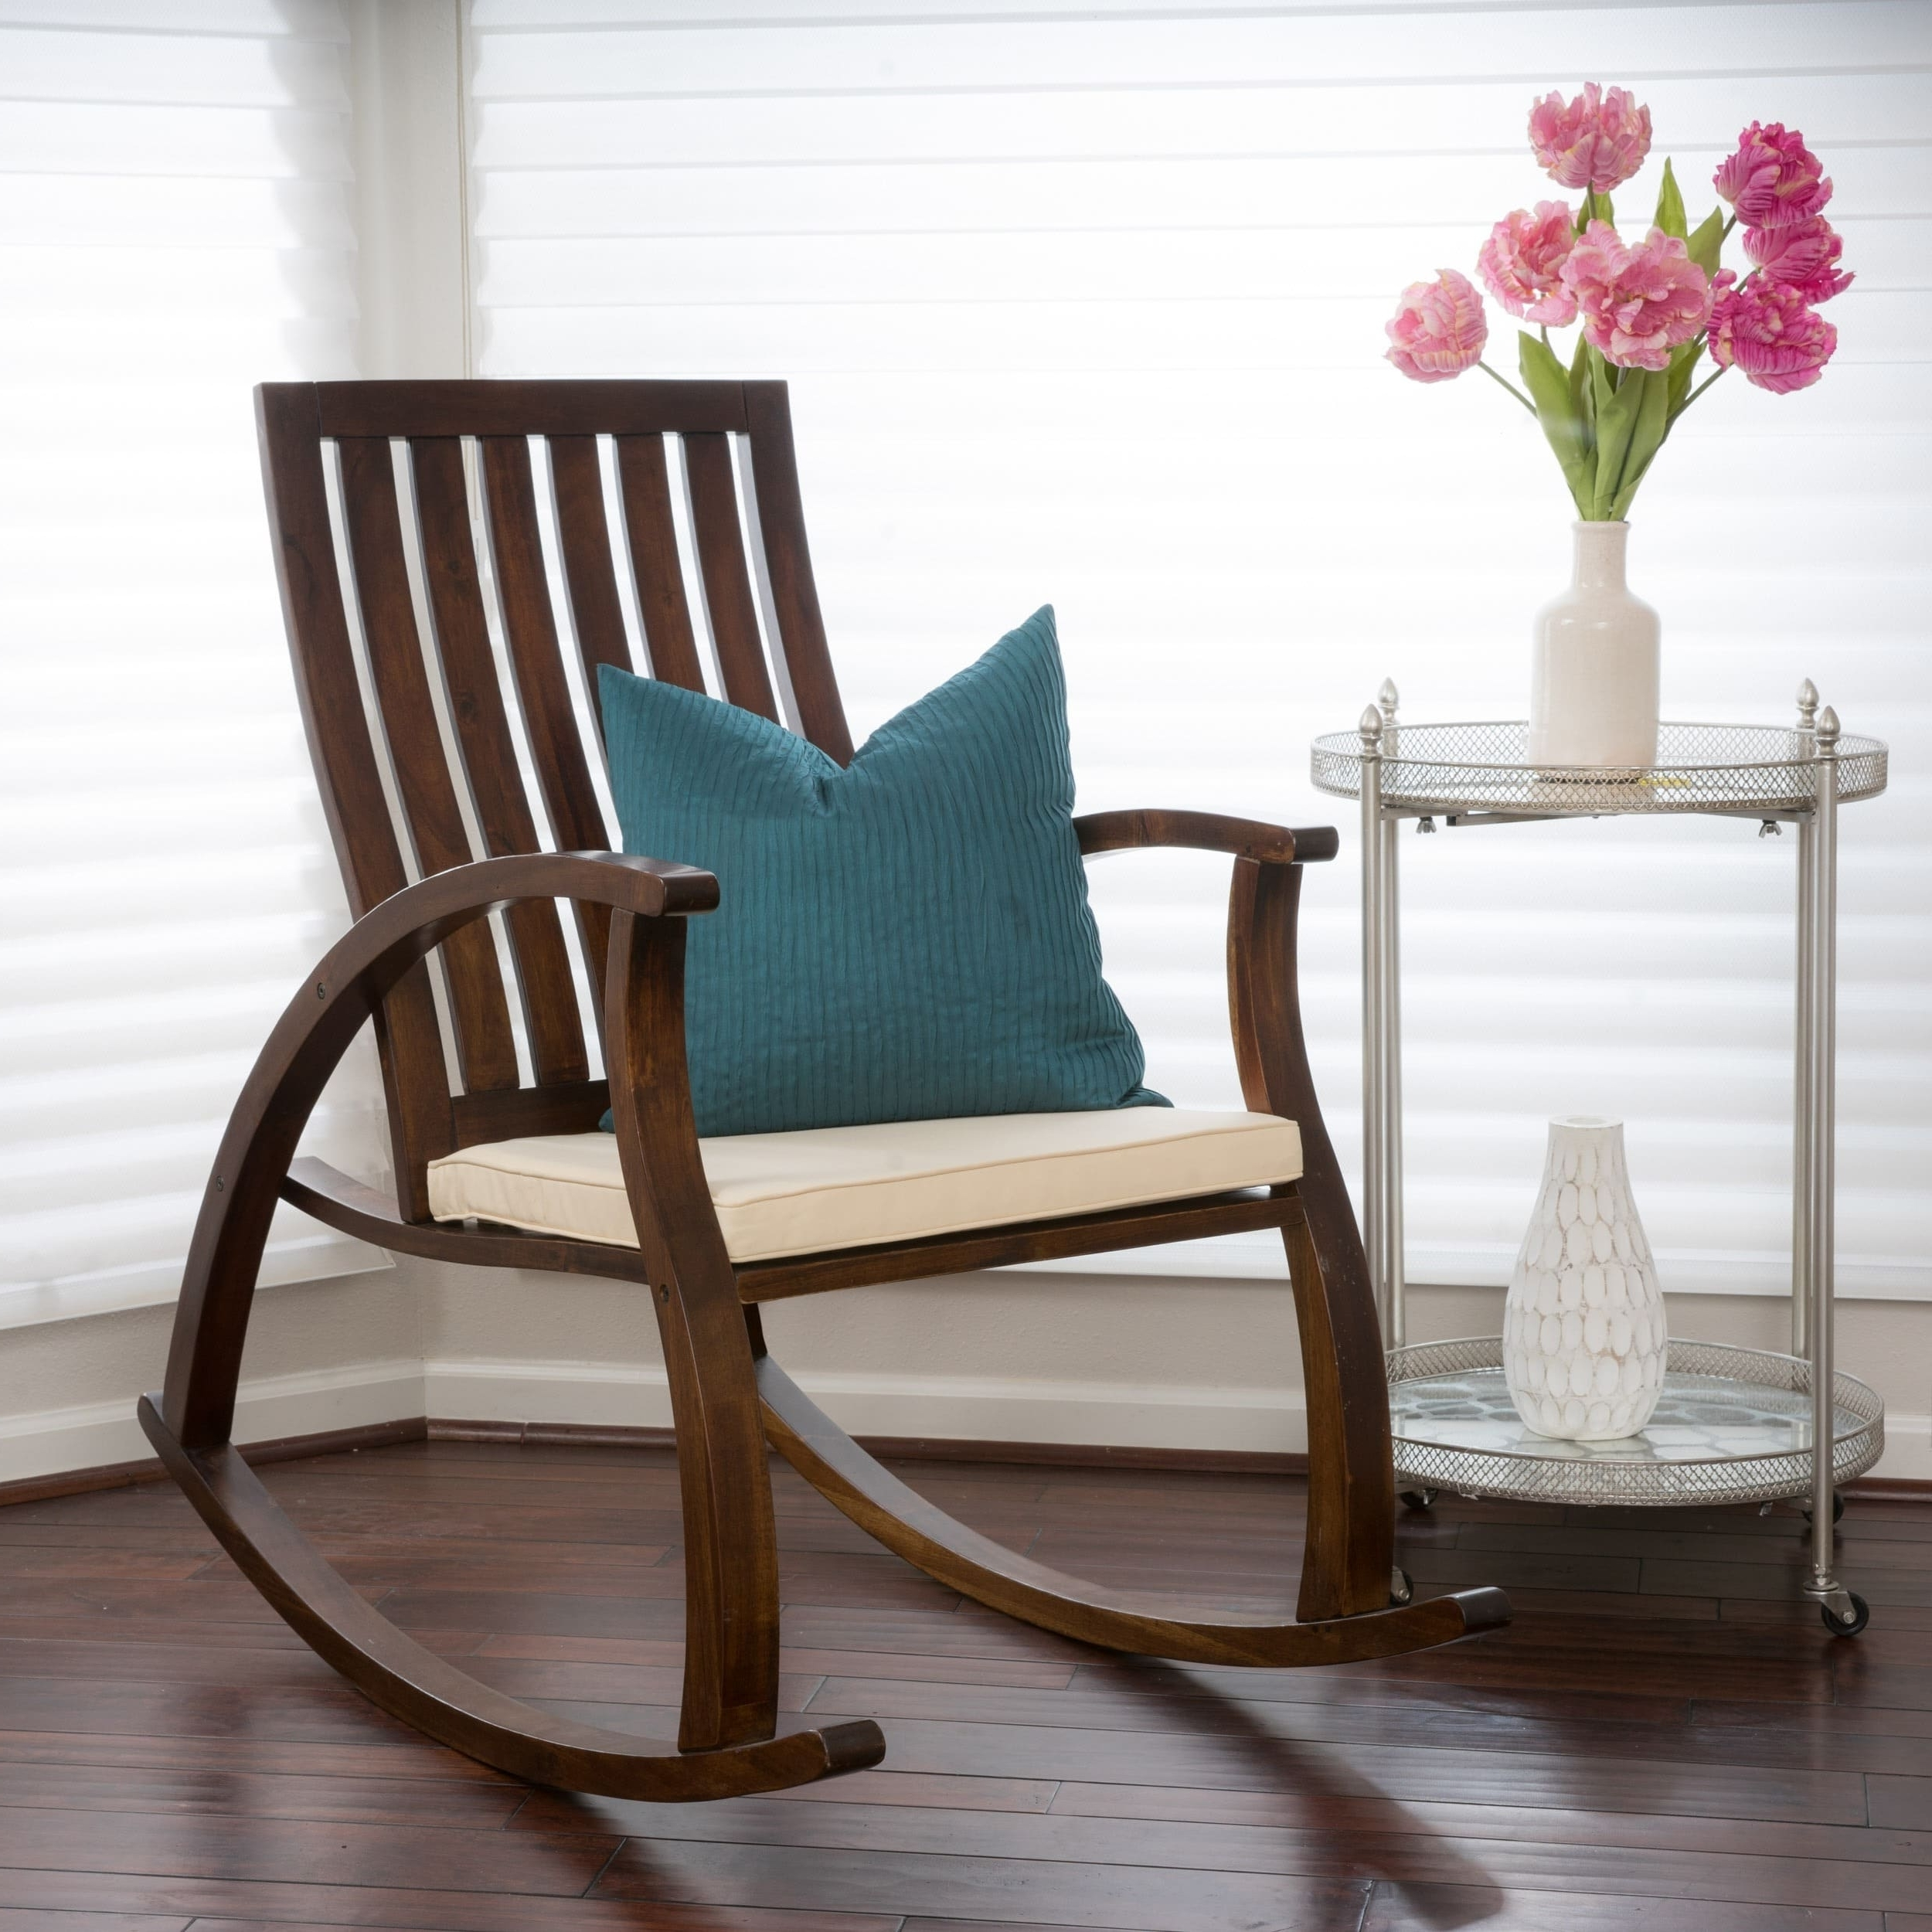 Shop Abraham Brown Mahogany Wood Rocking Chair W/ Cushion Inside Current Rocking Chairs With Lumbar Support (View 17 of 20)